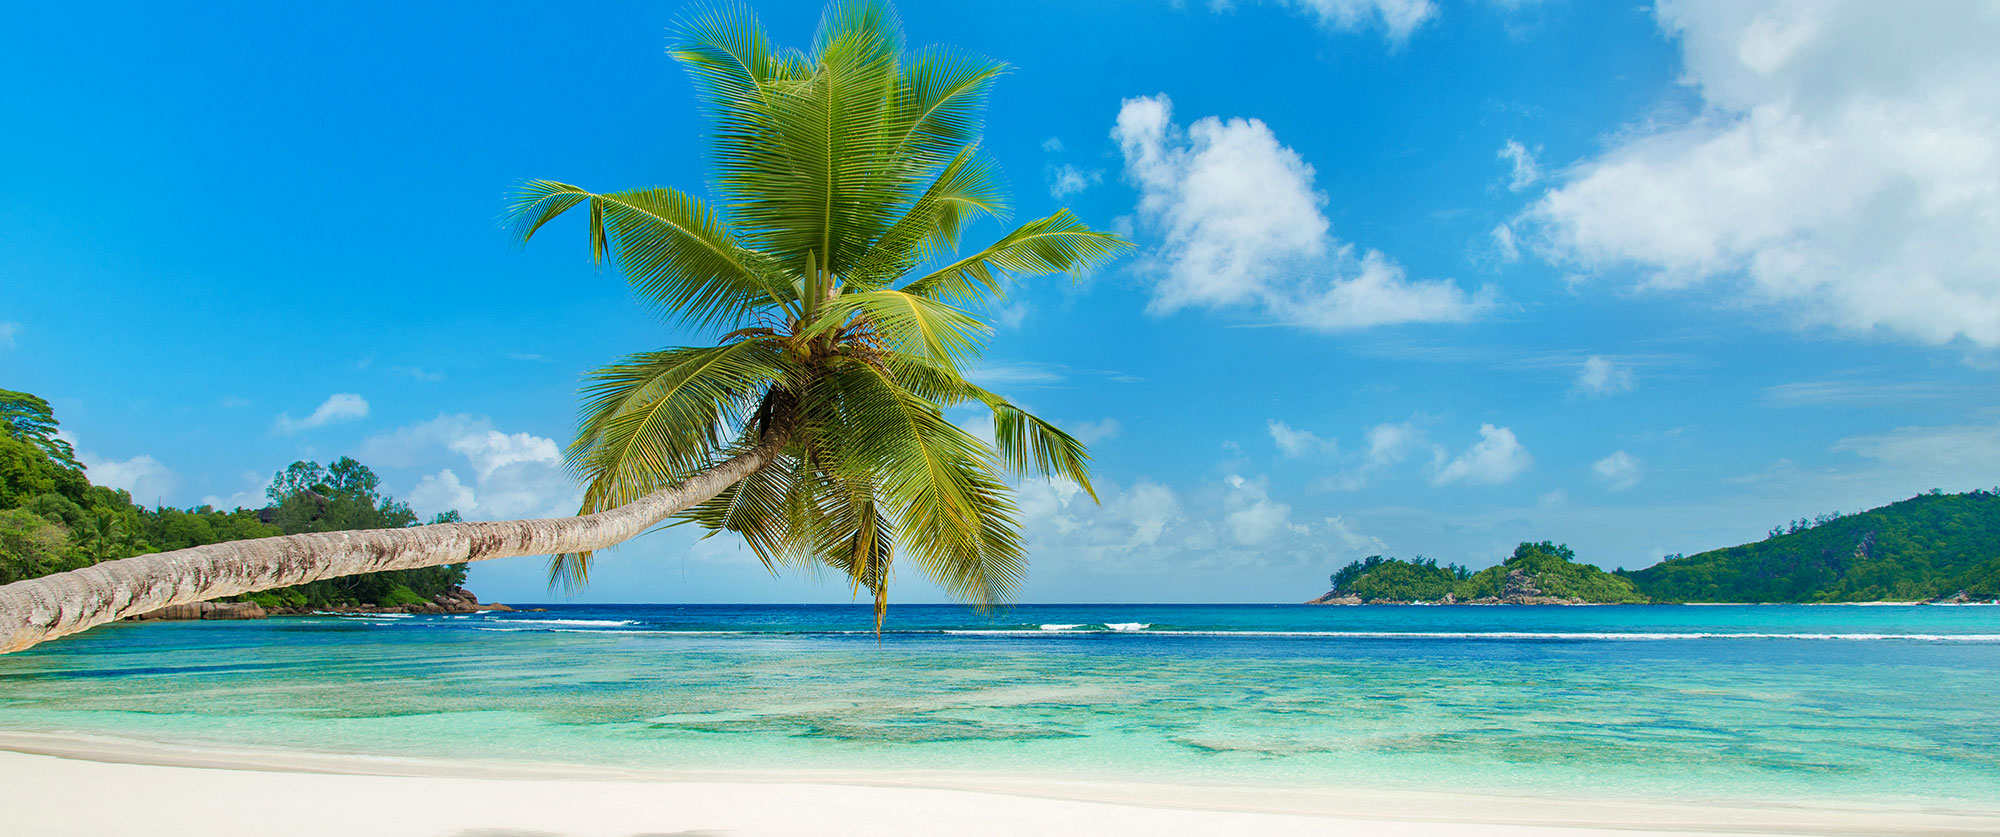 Seychelles Beach - Male Island